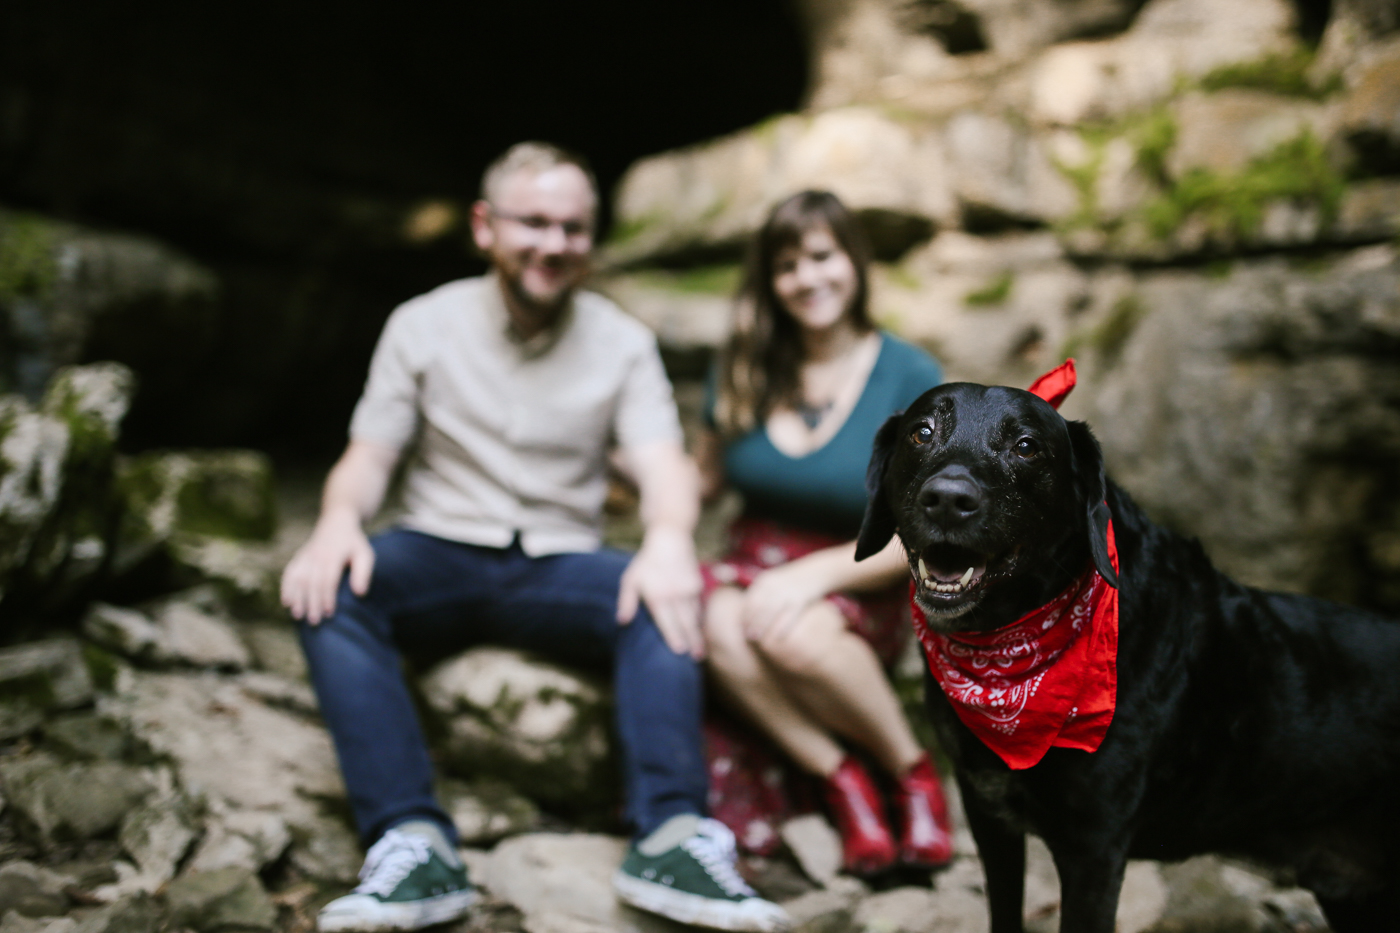 Eastern-Kentucky-Outdoors-Cave-Engagement-Photography-38.jpg